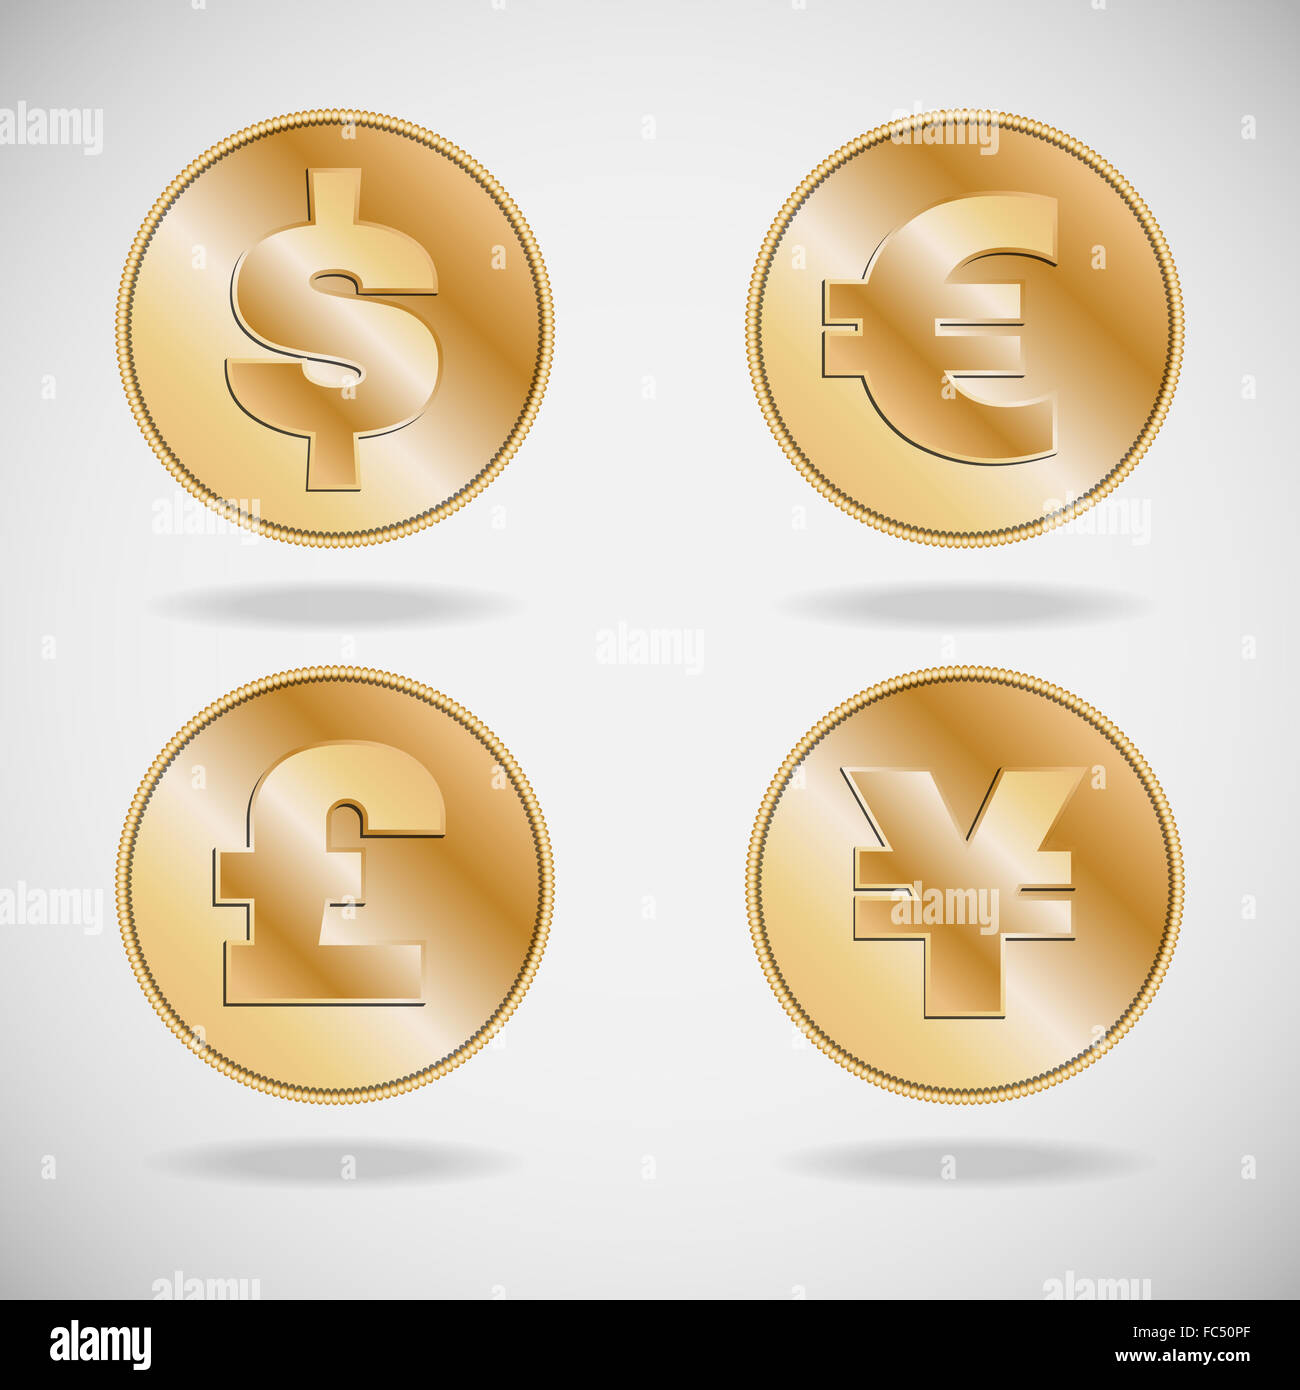 Symbols Of Various Currencies Dollar Euro Pound And Yen Or Yuan